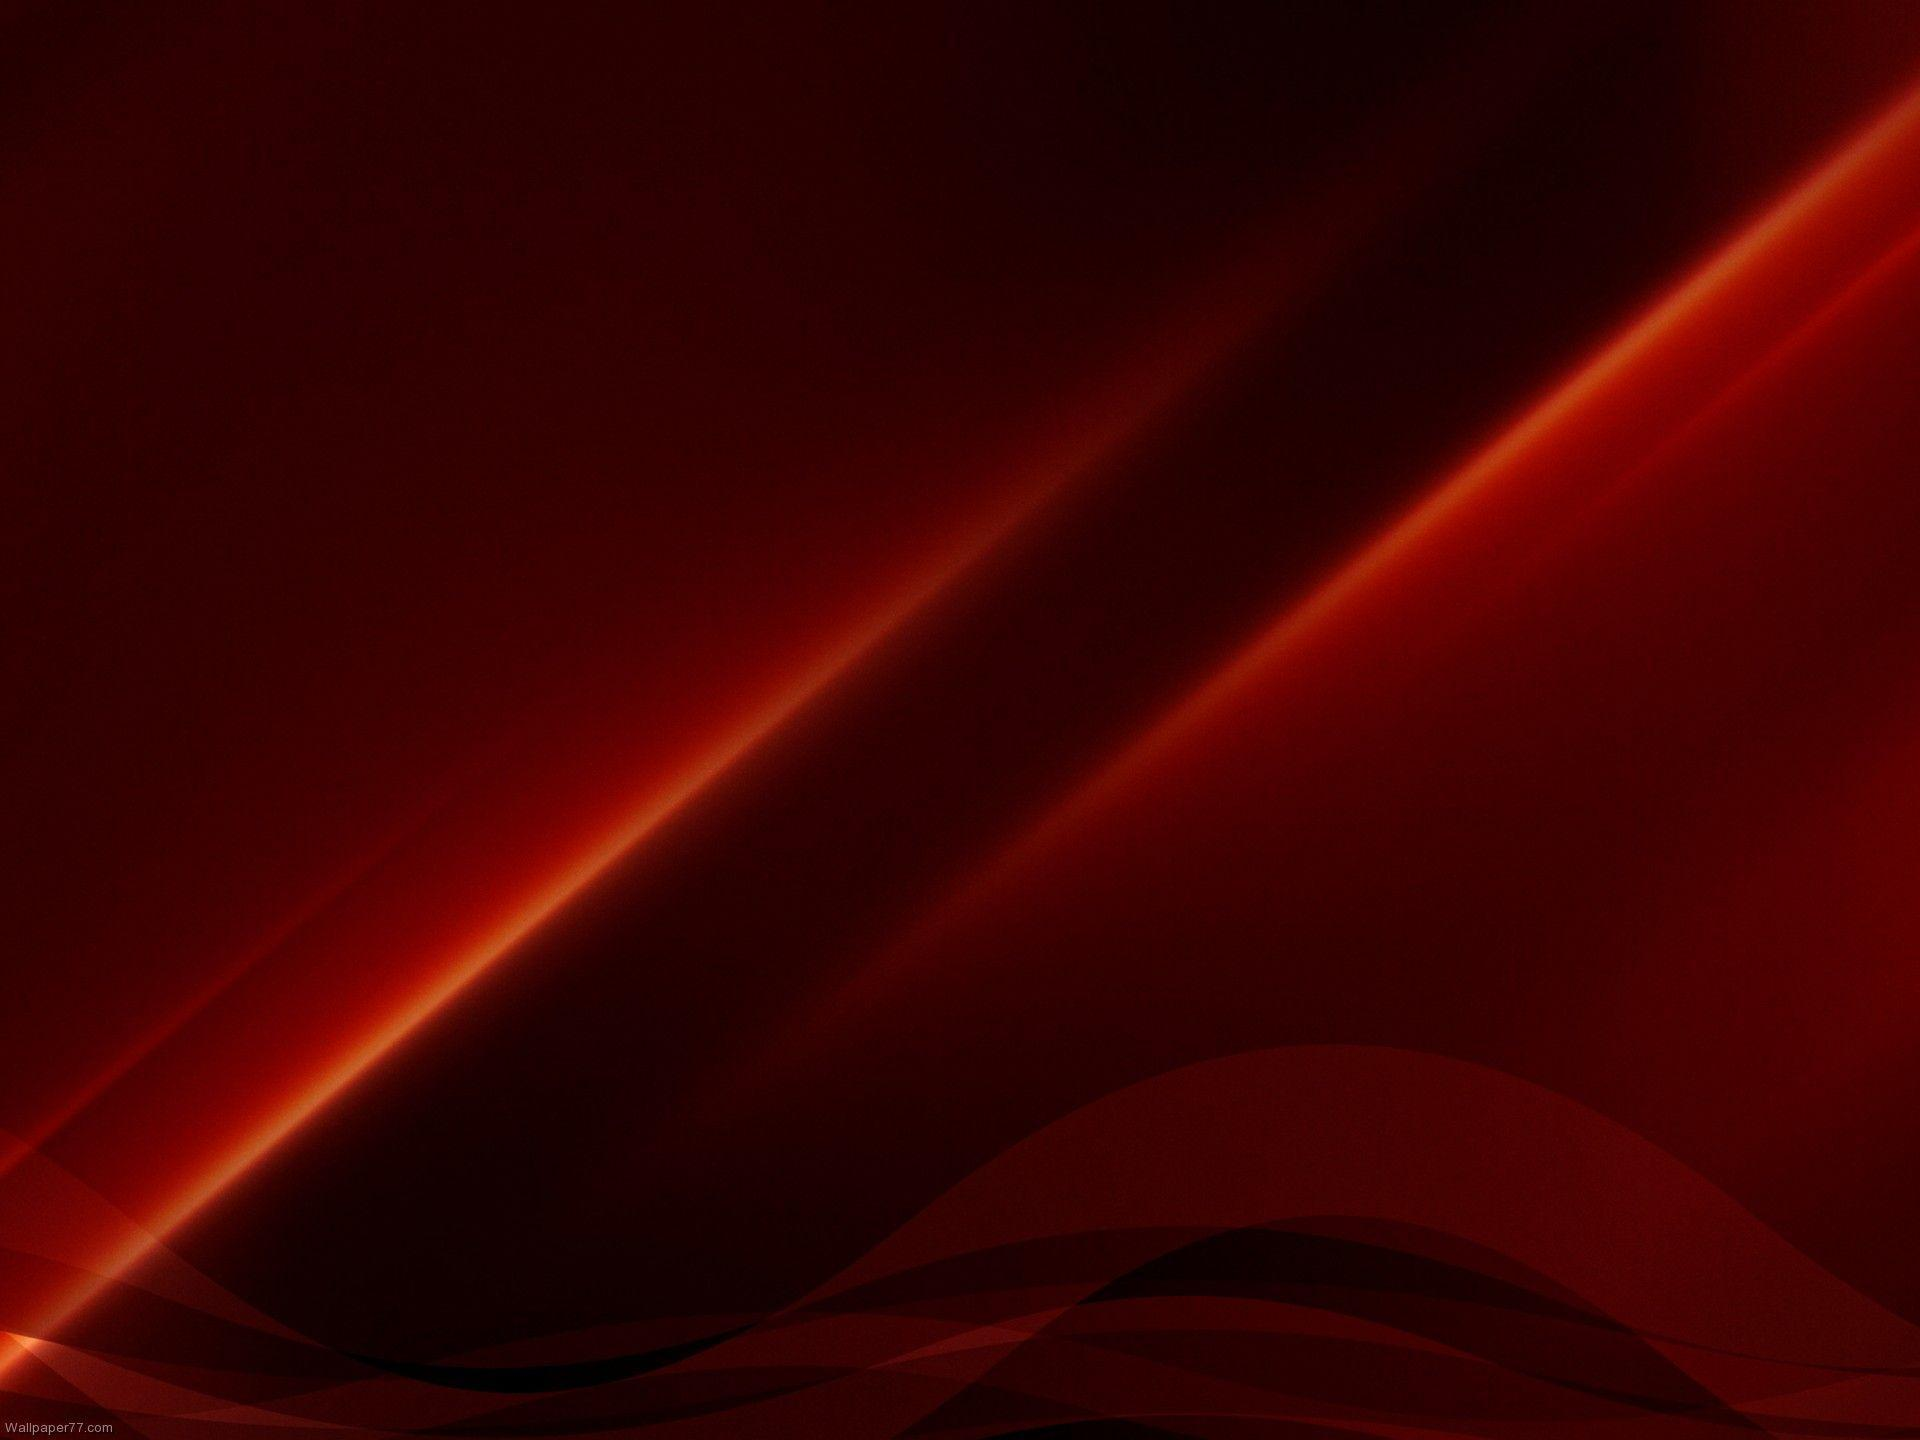 Geography Hd Wallpaper Maroon Backgrounds Wallpaper Cave